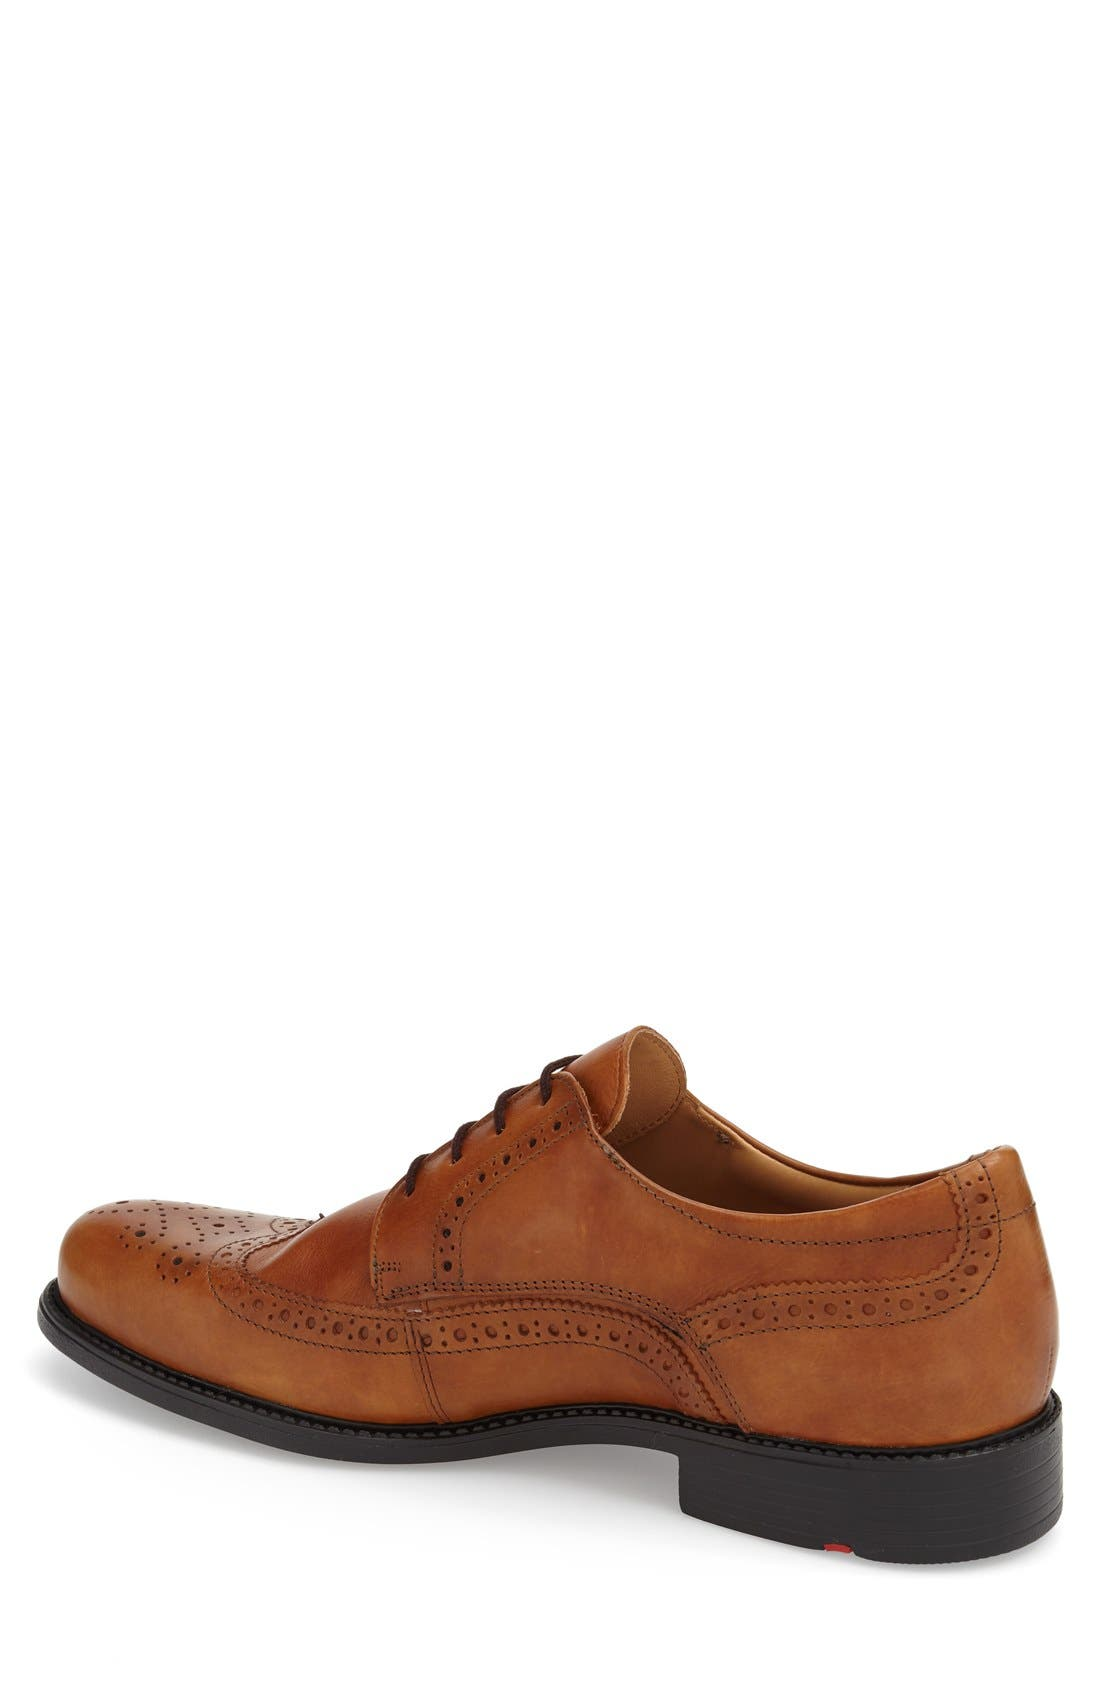 'Tampico' Wingtip Derby,                             Alternate thumbnail 2, color,                             236